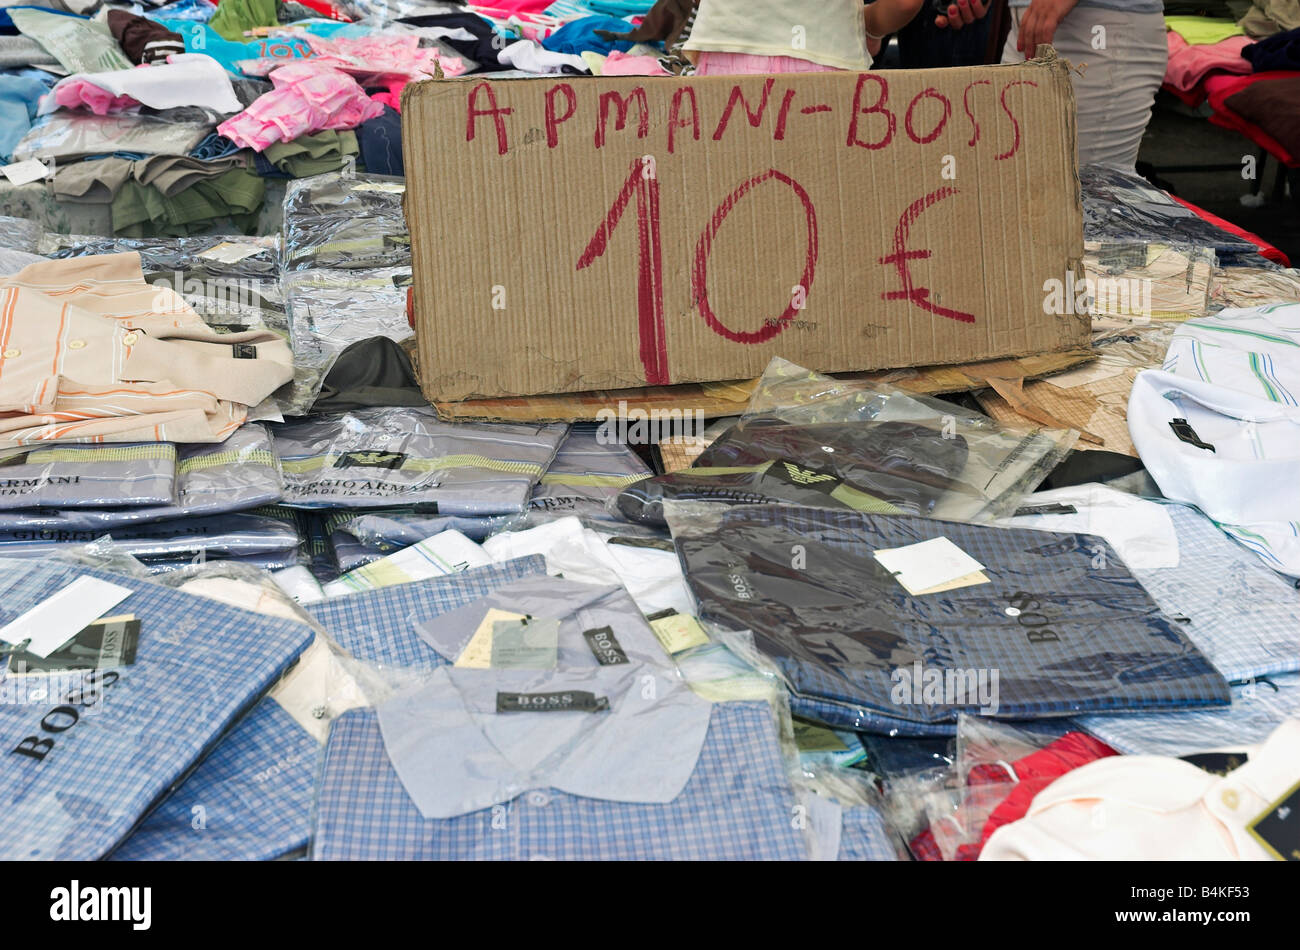 Fake Designer Polo Shirts For Sale In A Market In